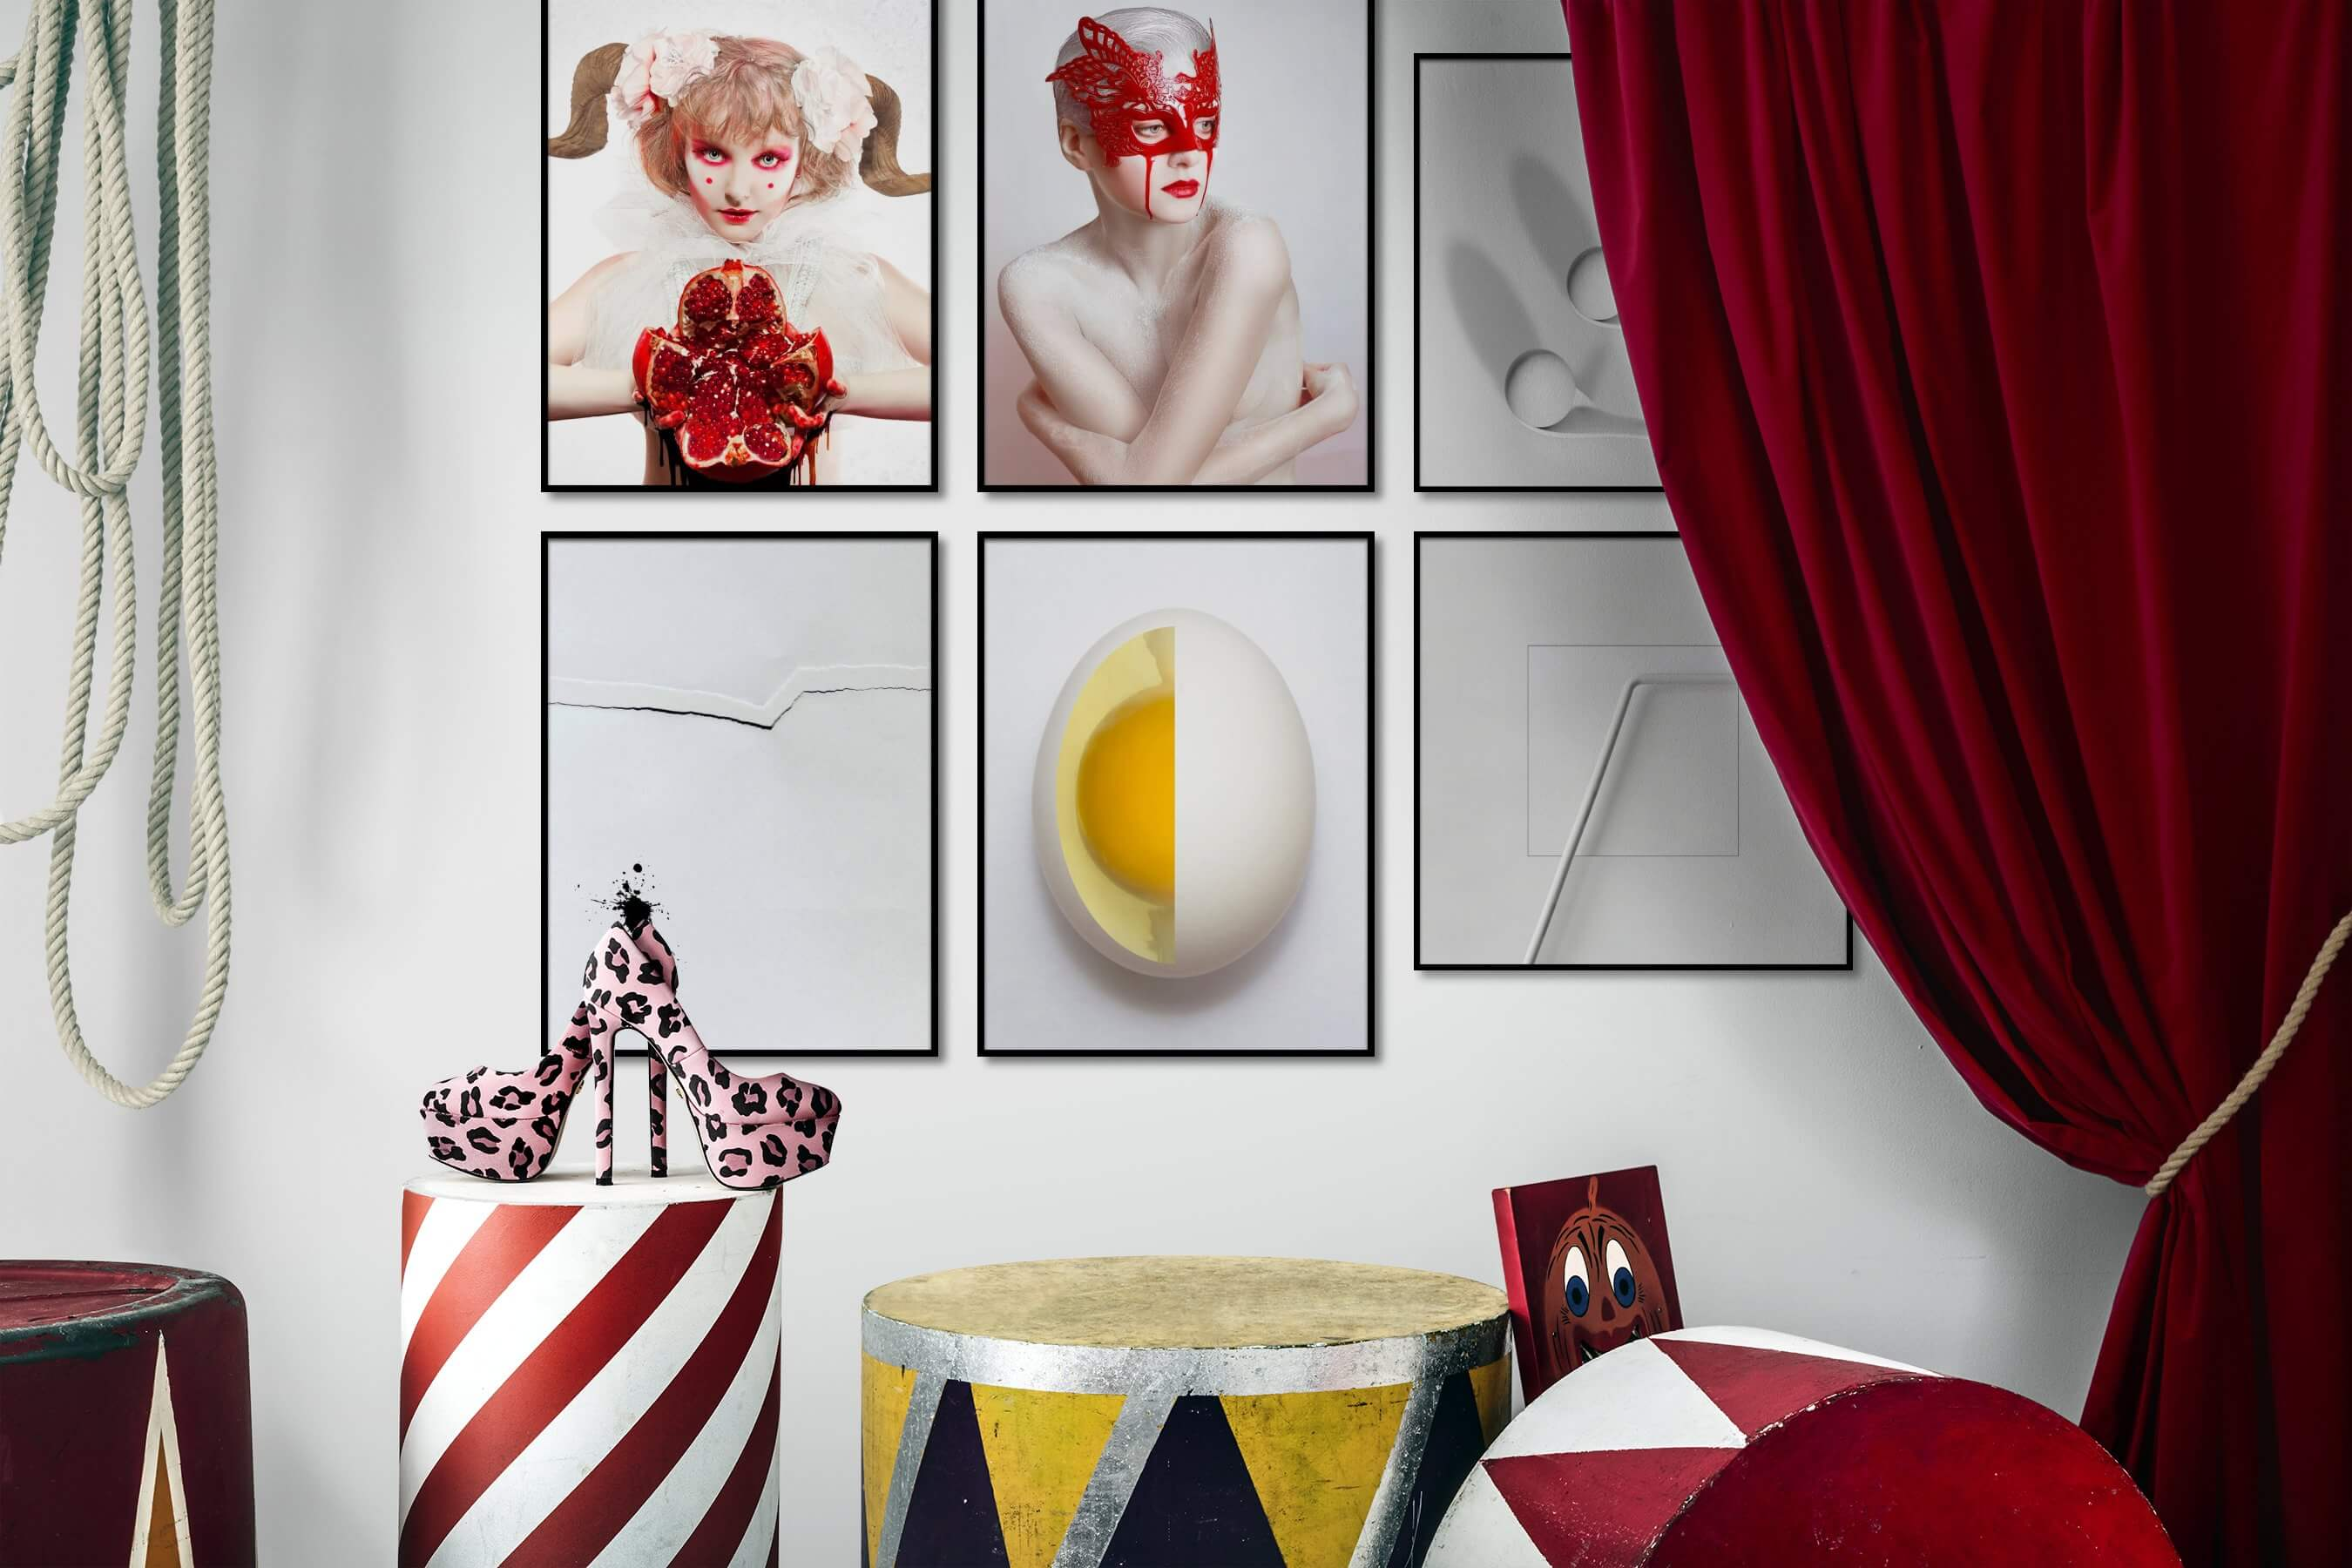 Gallery wall idea with six framed pictures arranged on a wall depicting Artsy, Fashion & Beauty, Black & White, For the Minimalist, and Bright Tones